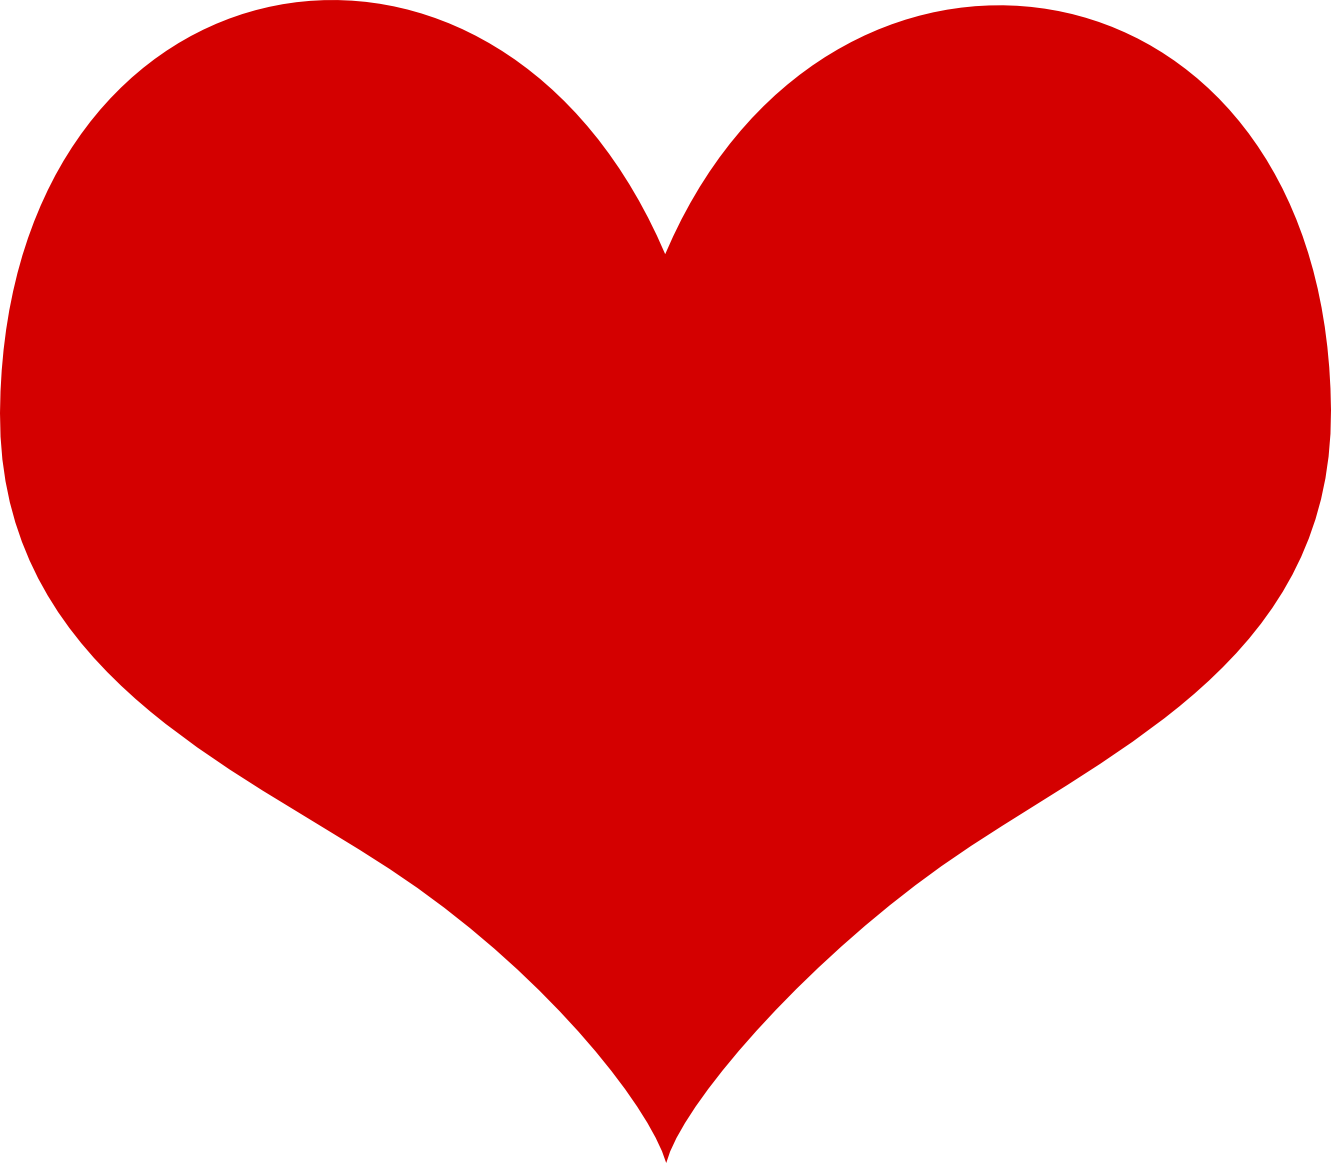 Red heart PNG image, free download - Heart PNG